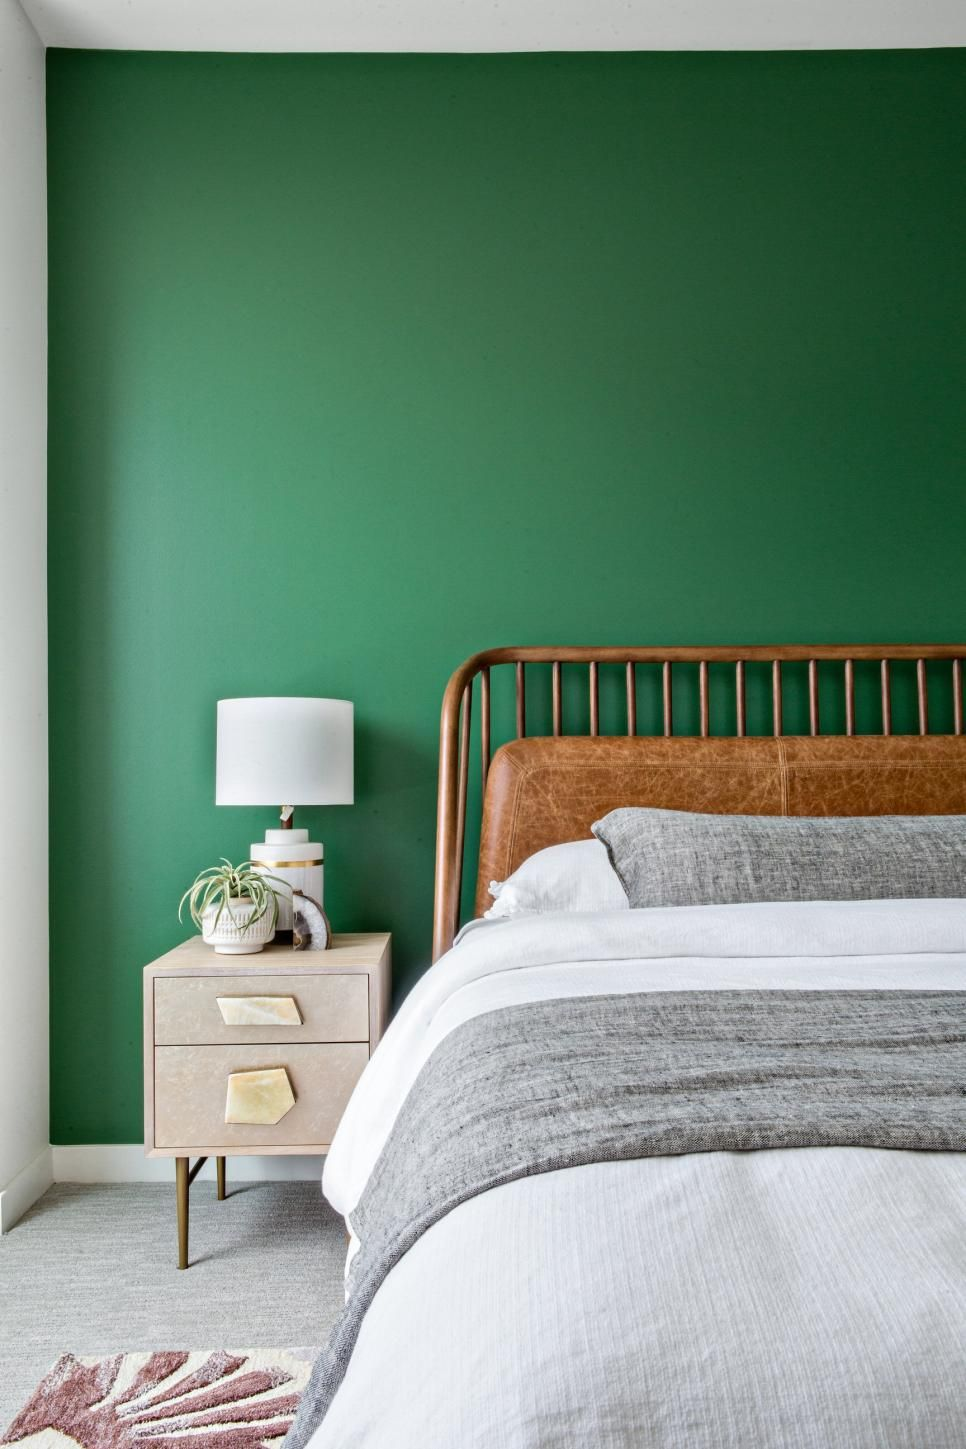 Midcentury Modern Bedroom Has Green Accent Wall Home Decor Bedroom Green Bedroom Walls Bedroom Interior